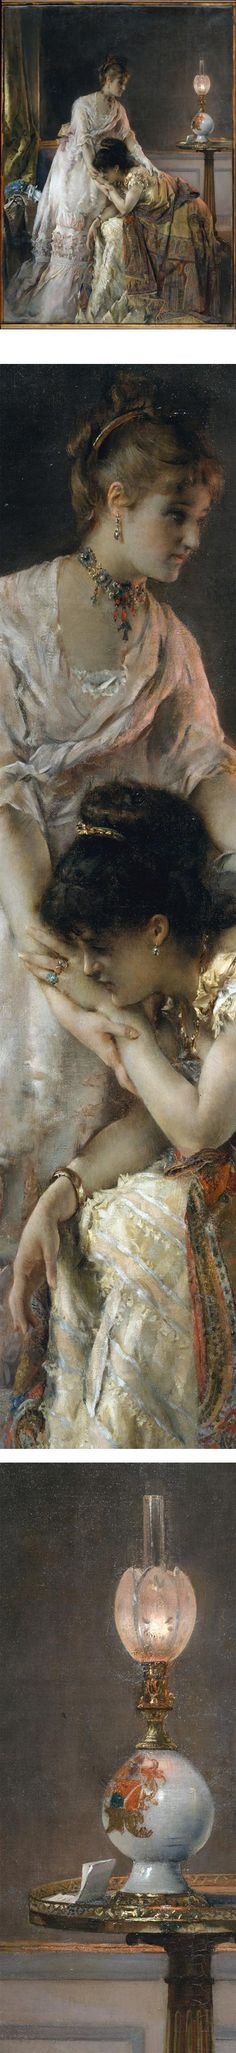 After the Ball by Alfred Stevens.